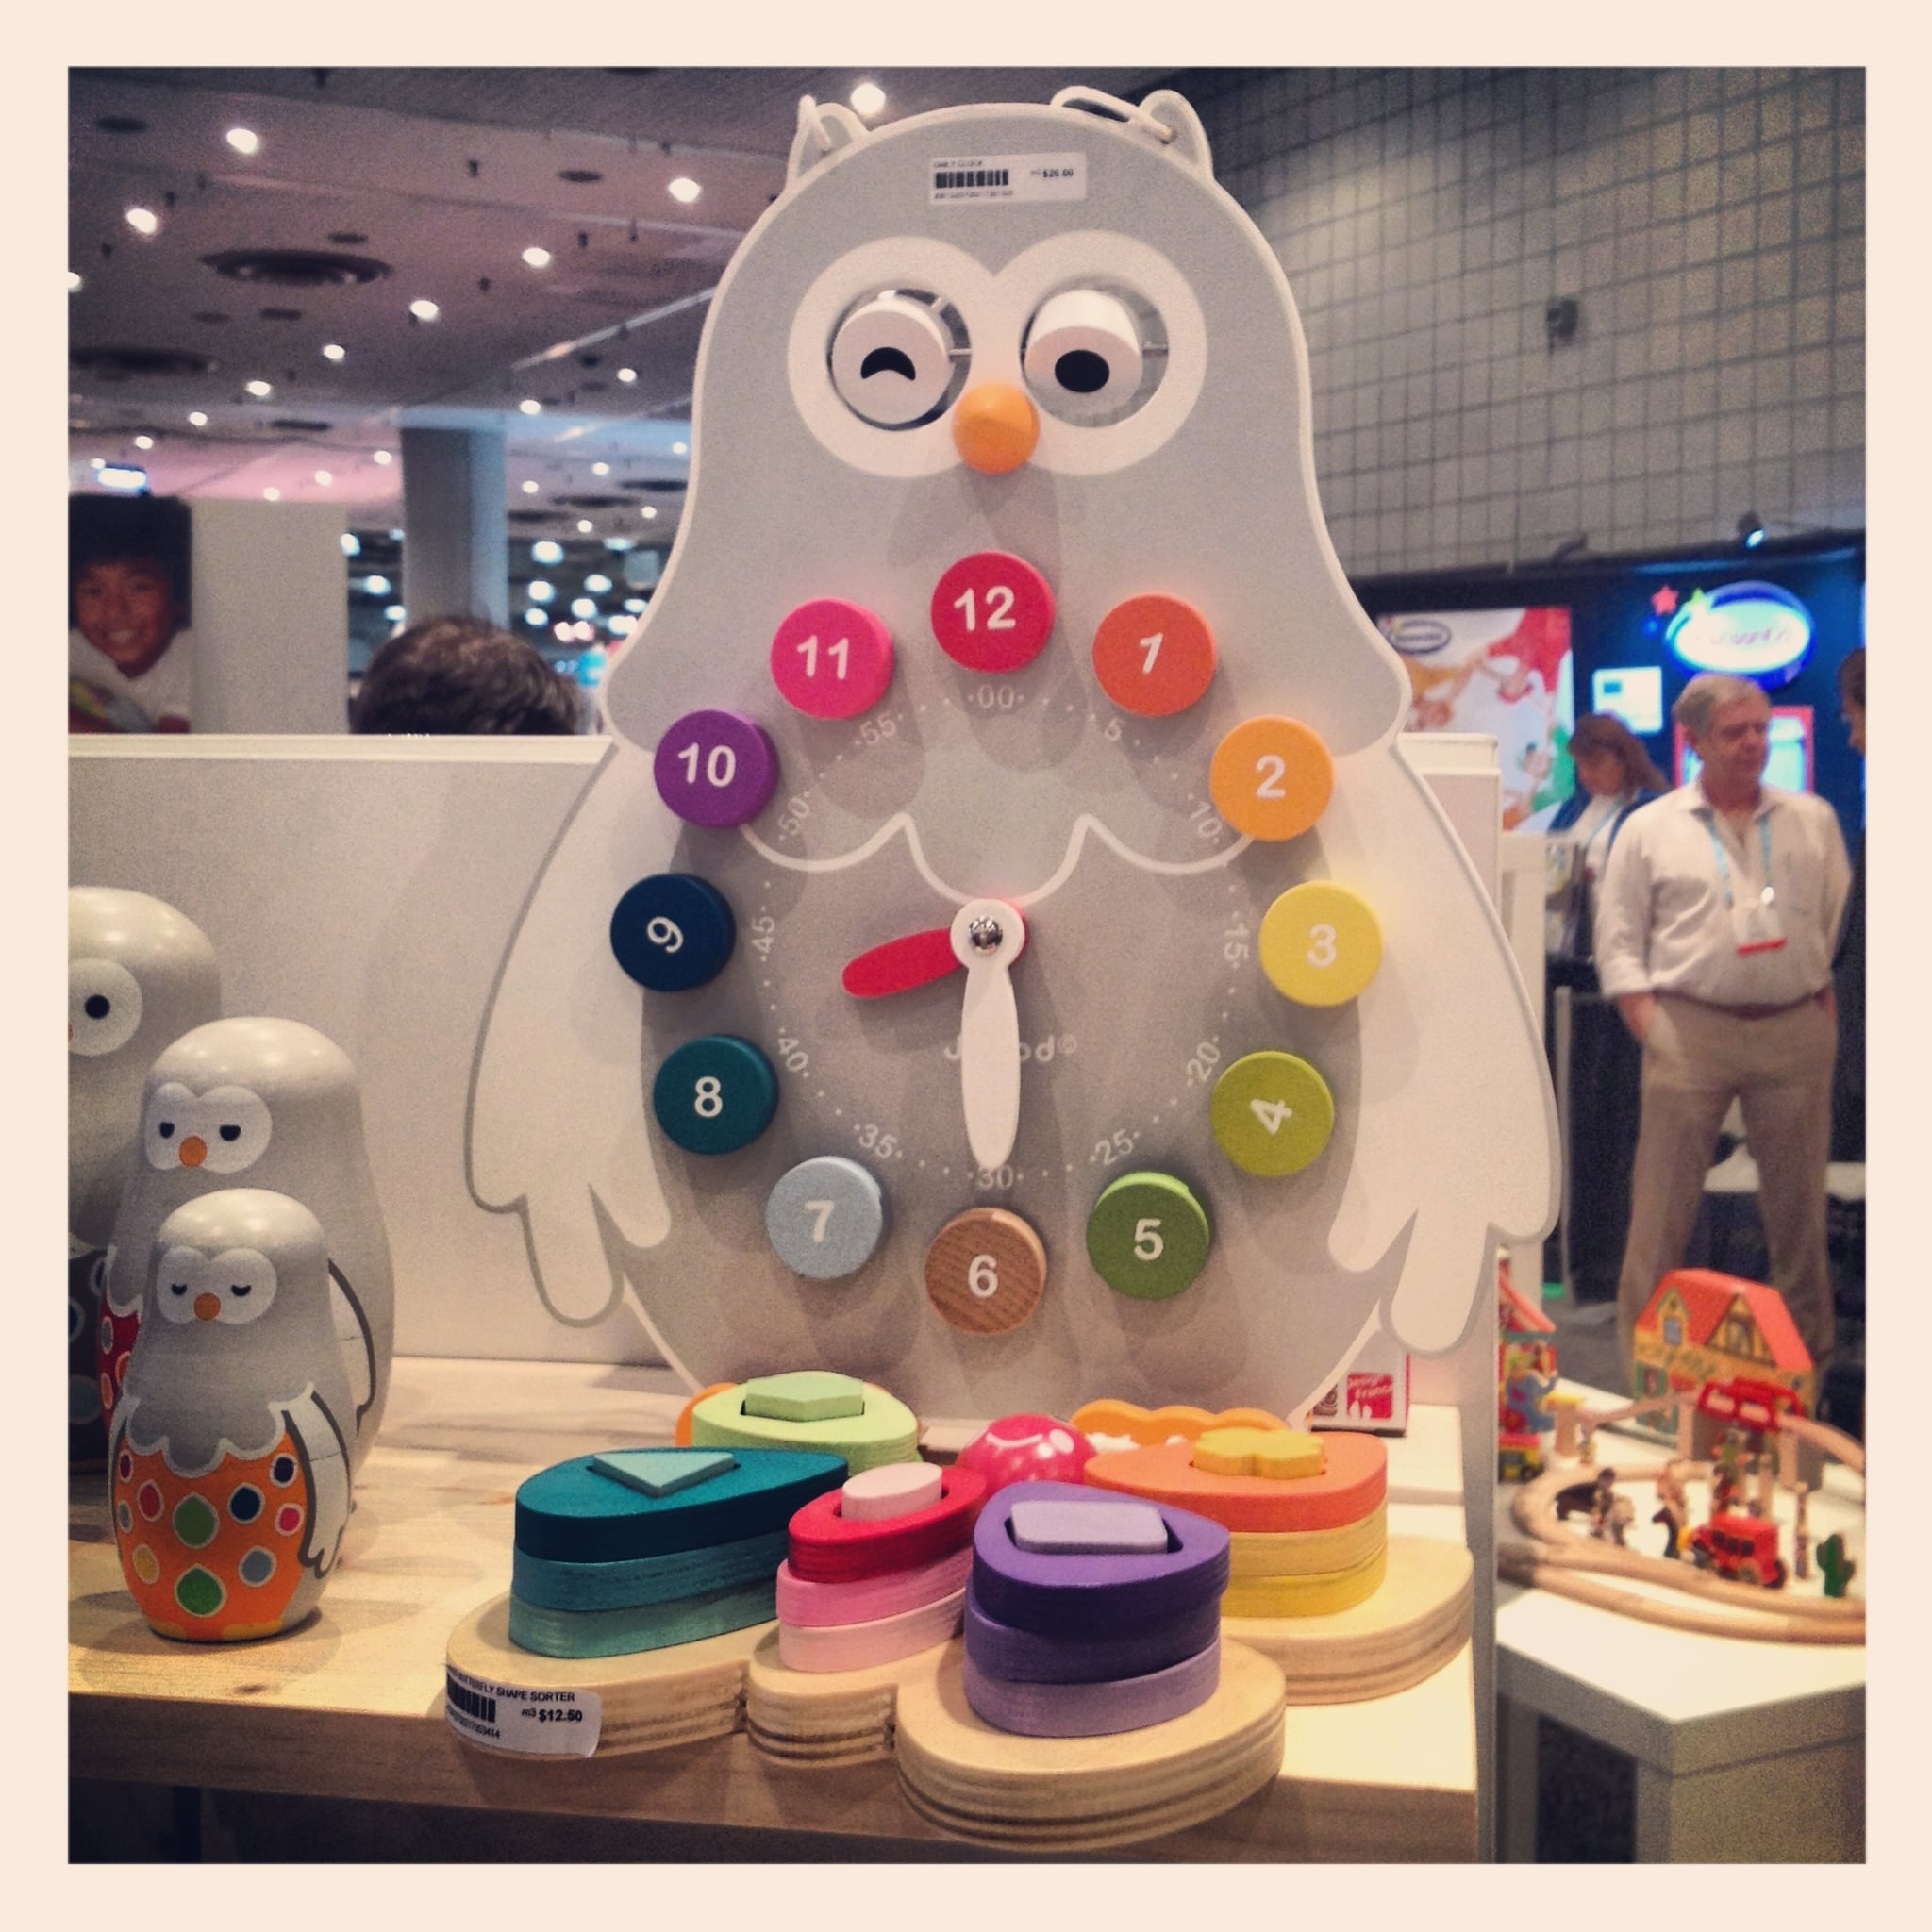 """The Janod """"Owly"""" clock looks like a great tool for teaching time."""